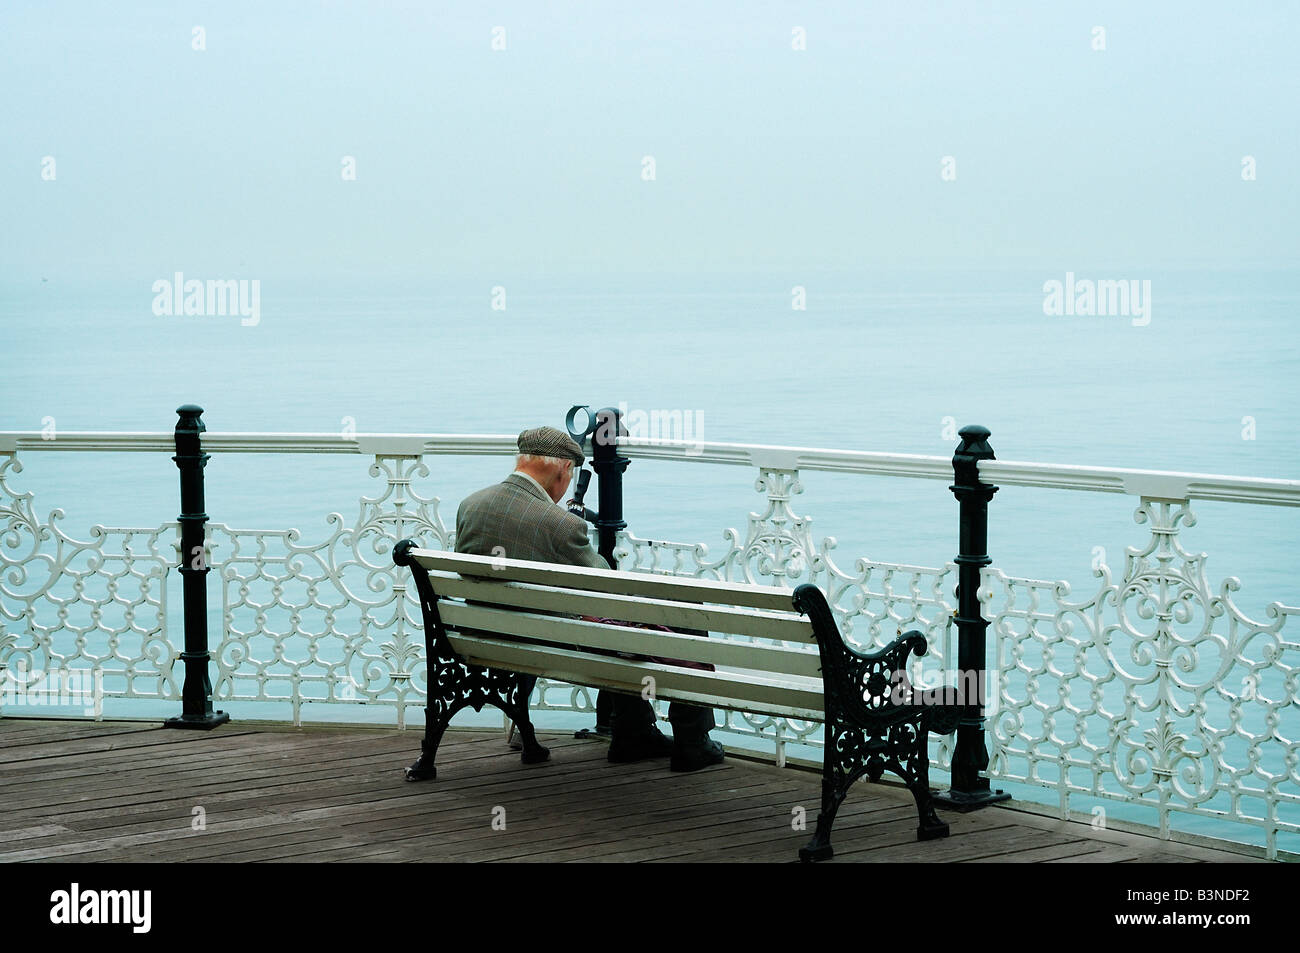 Senior man wearing tweed jacket and cap sits on a bench overlooking the ocean on Brighton Pier Brighton England - Stock Image